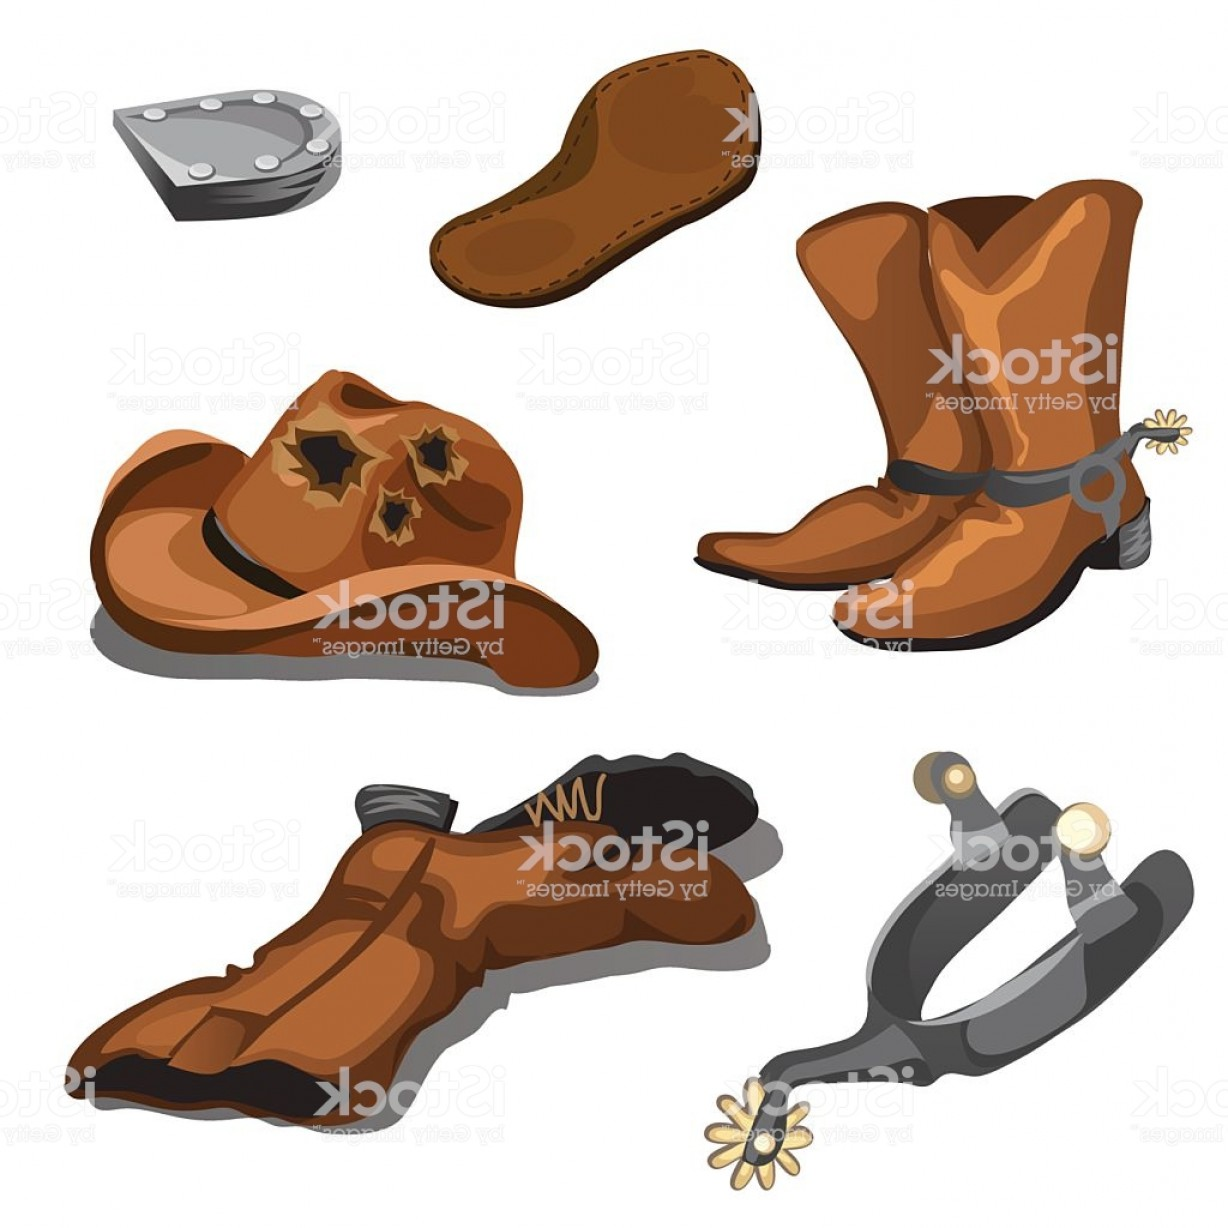 Spurs Clip Art Vector: Ripped Worn Cowboy Boots Hat And Spurs Gm